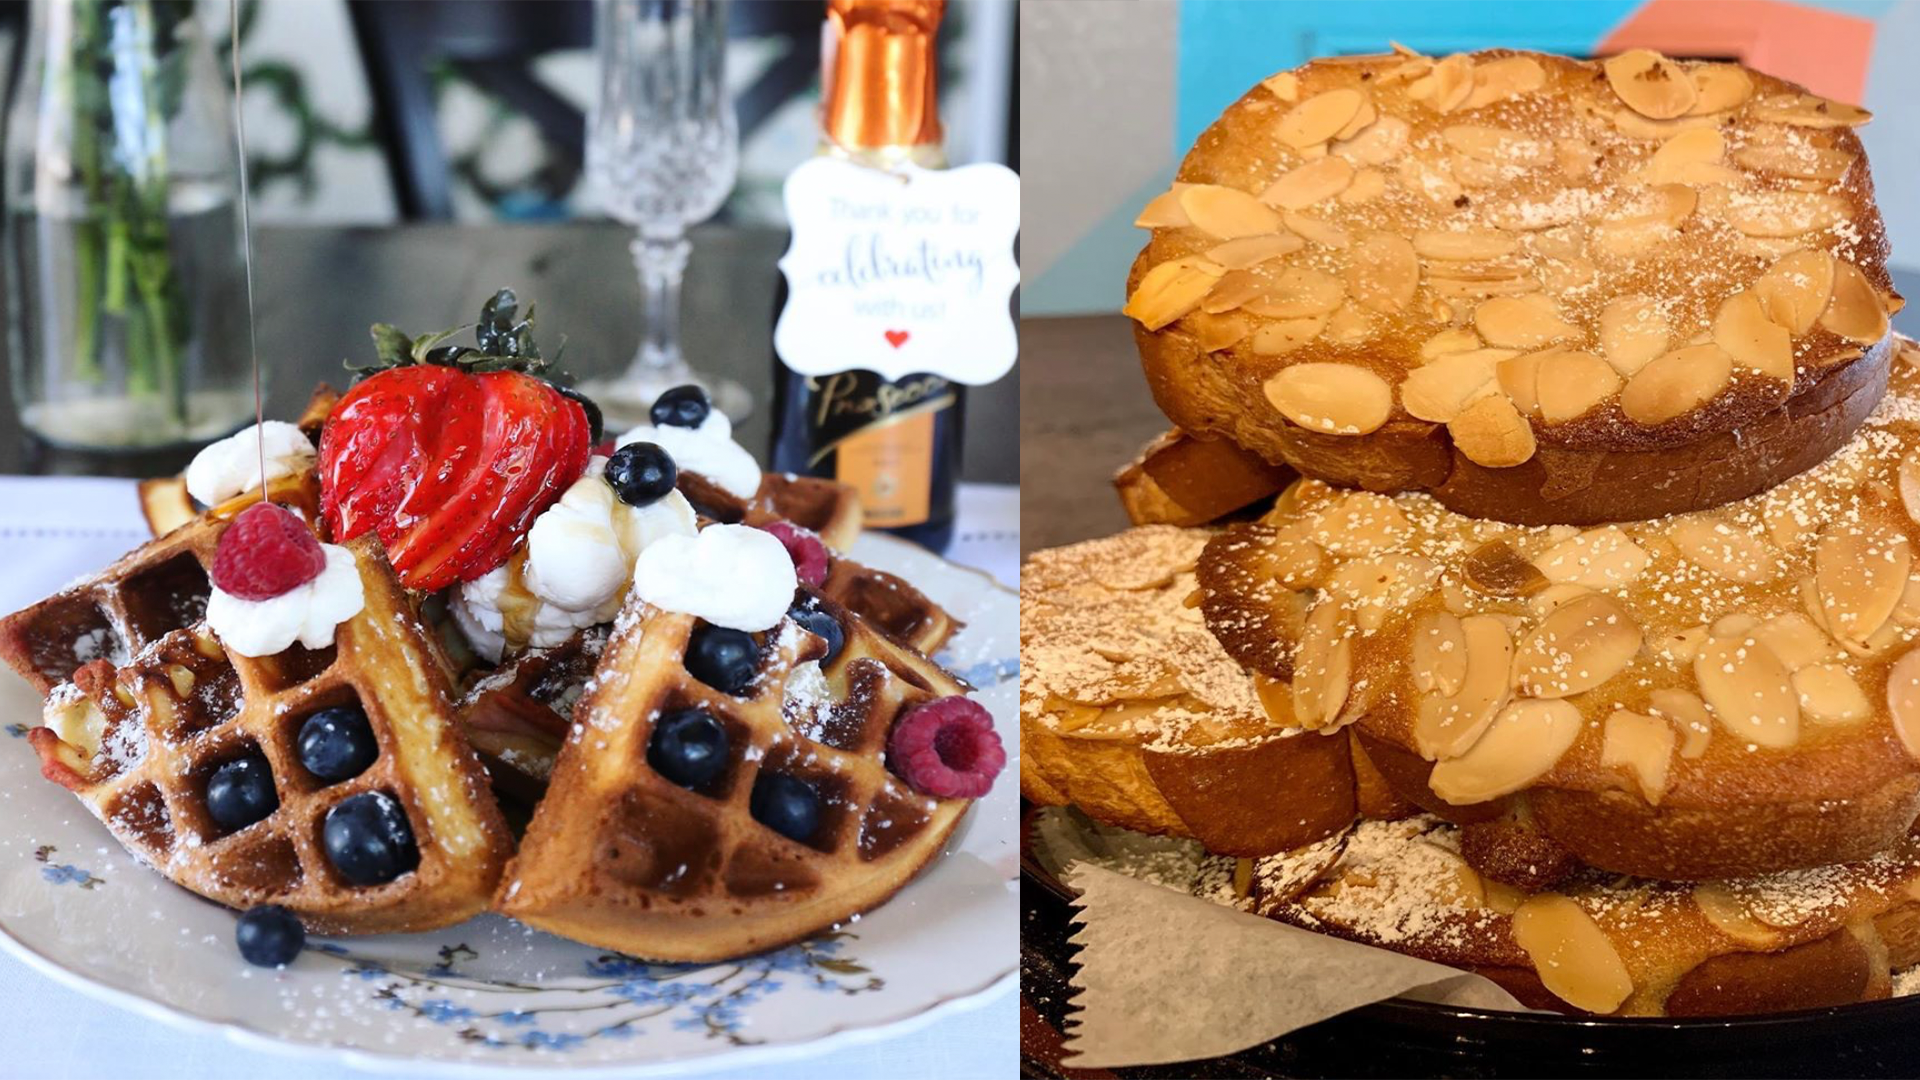 Photo of assorted waffles and almond pastries